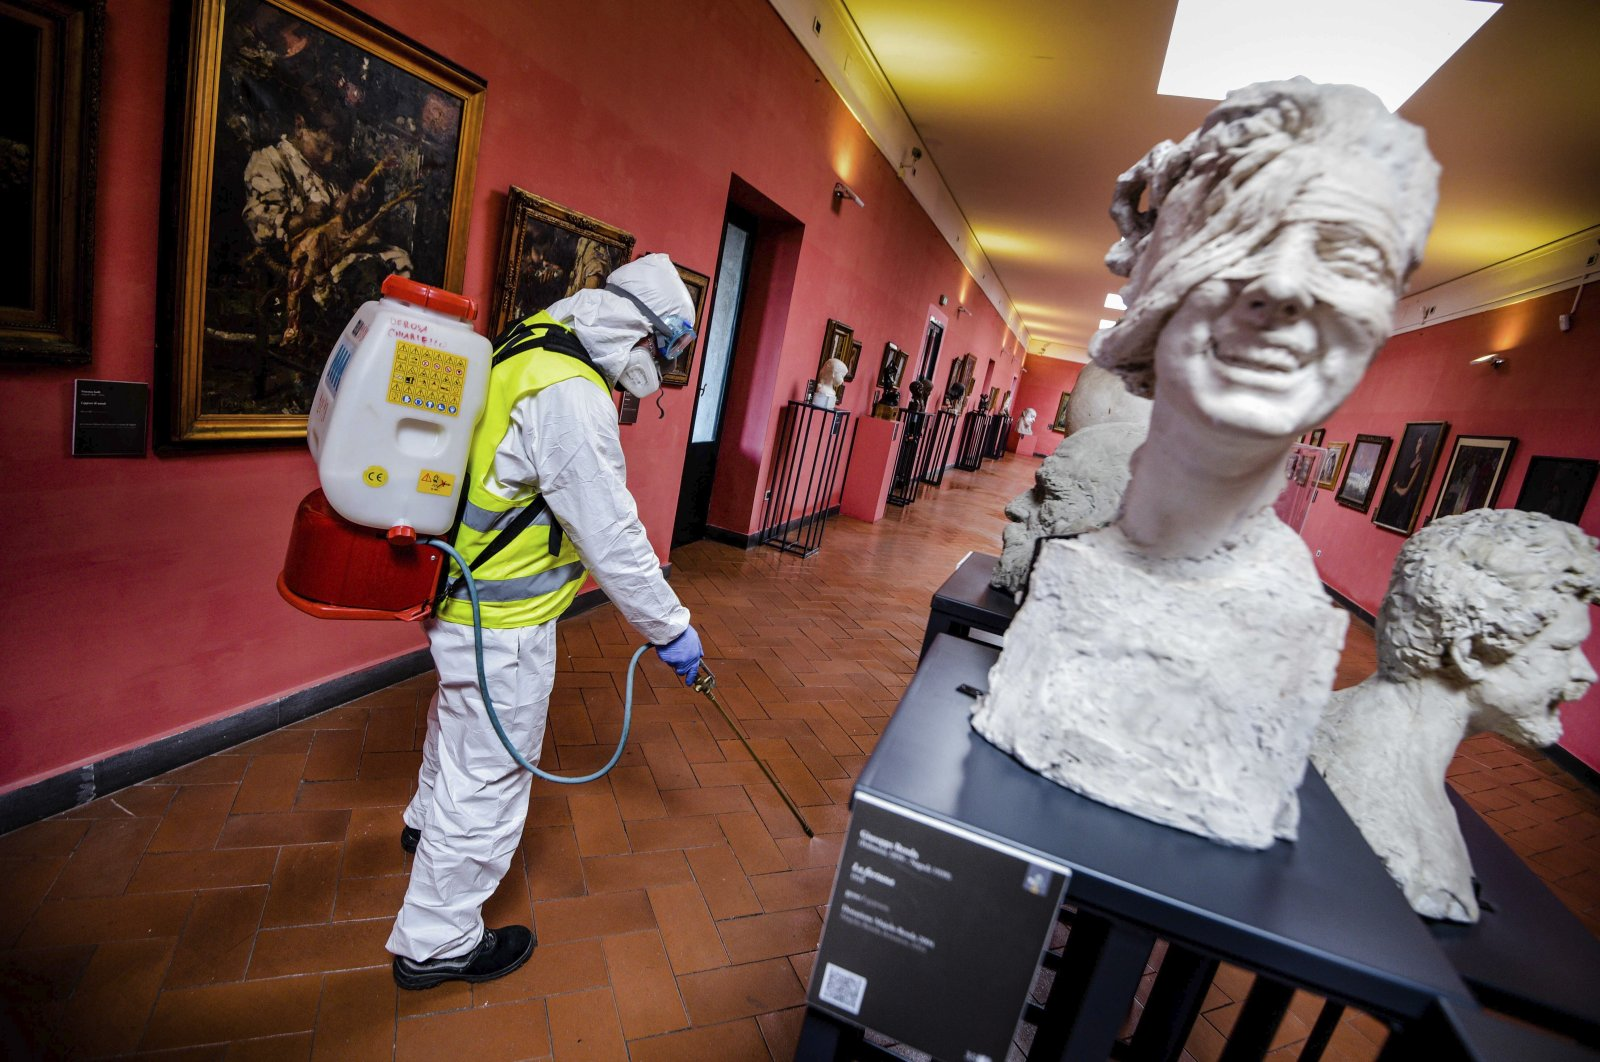 A worker sprays disinfectant to sanitize against coronavirus in the museum hosted by the Maschio Angioino medieval castle, in Naples, Italy, Tuesday, March 10, 2020. (LaPresse via AP)